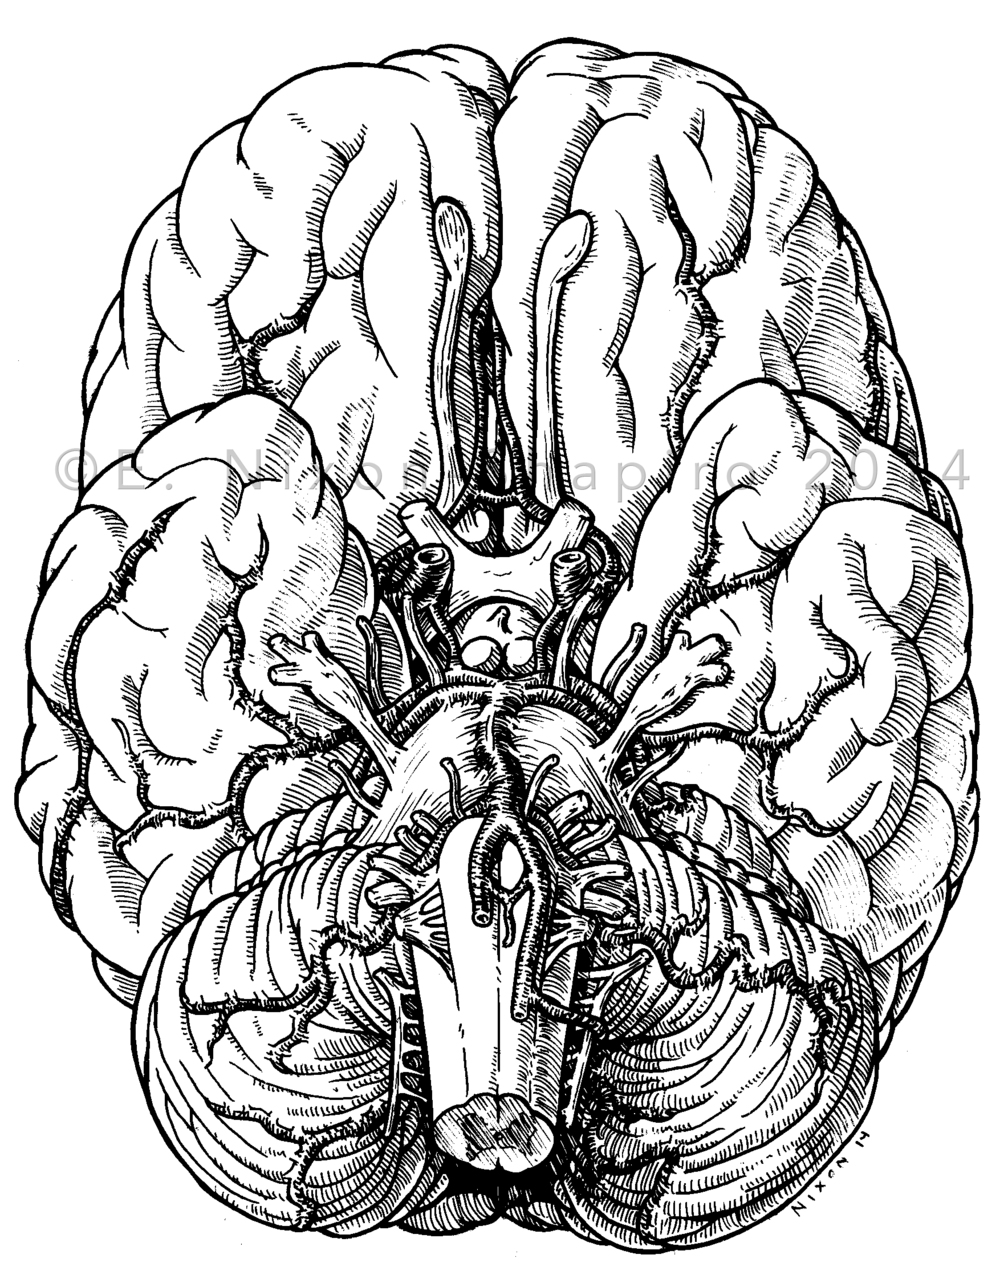 Drawn brain abstract White Illustration — the Media